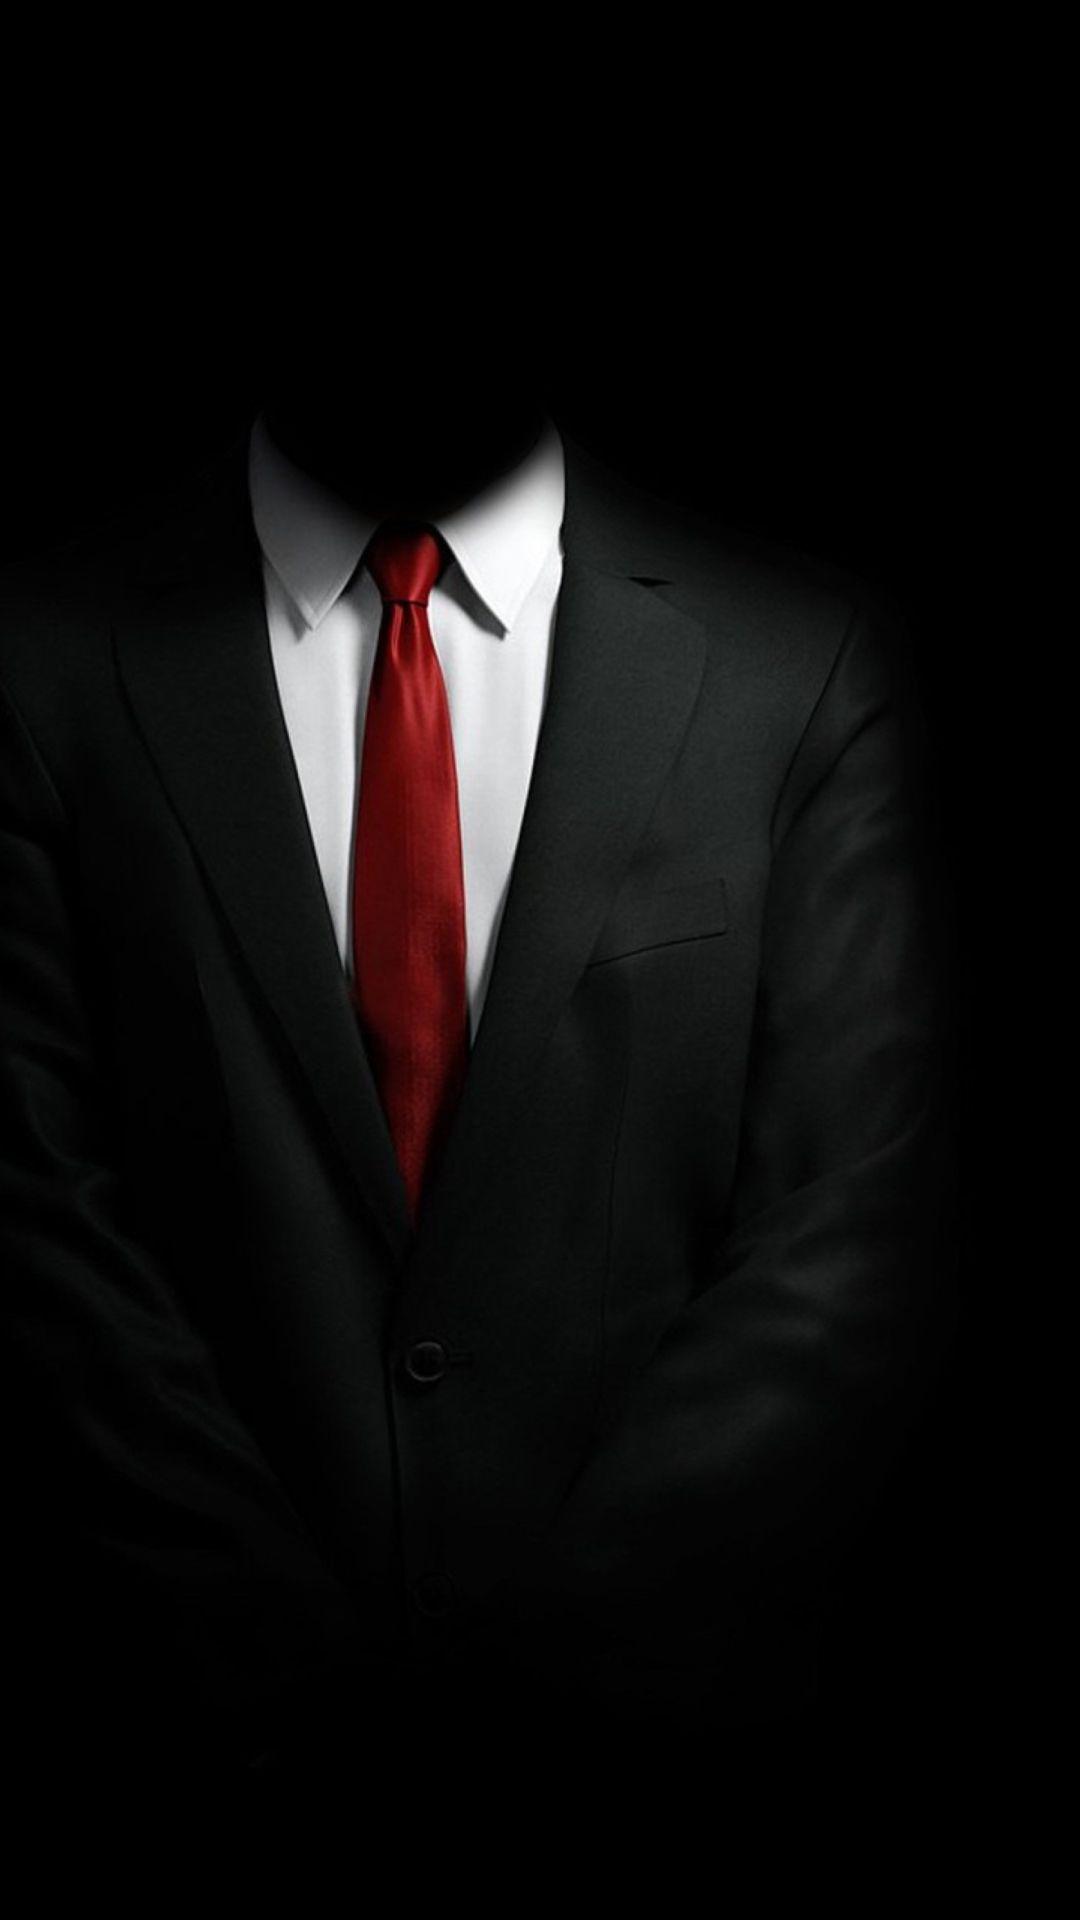 Anonymous Hd Wallpaper For Iphone Iphone Wallpaper For Guys Phone Wallpaper For Men Smartphone Wallpaper